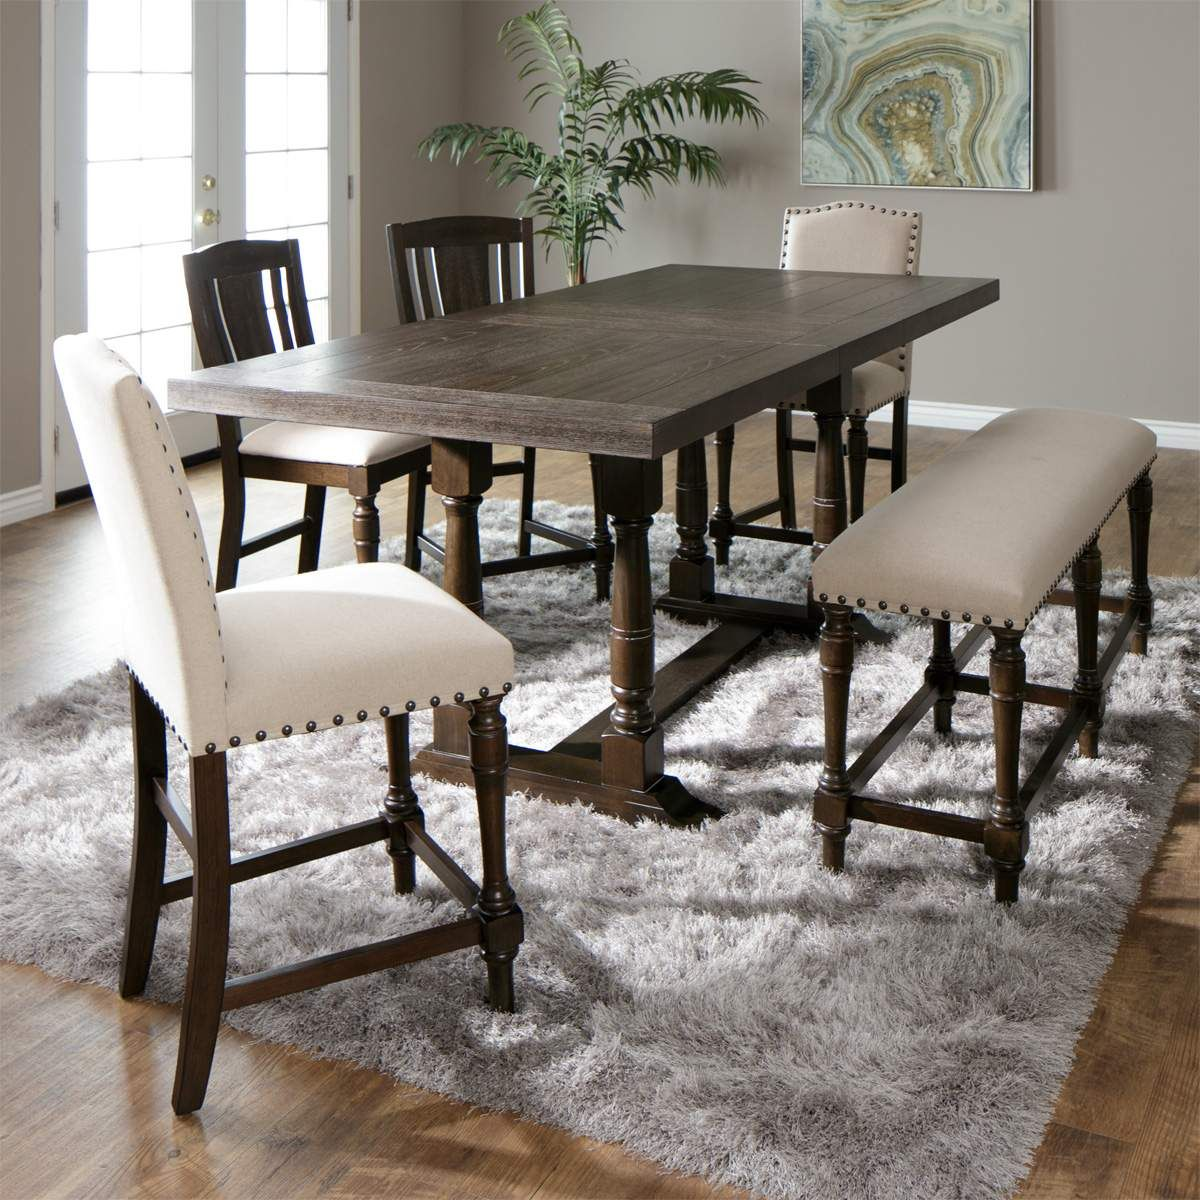 Counter Height Dining Set With Bench Jerome S Furniture Dining